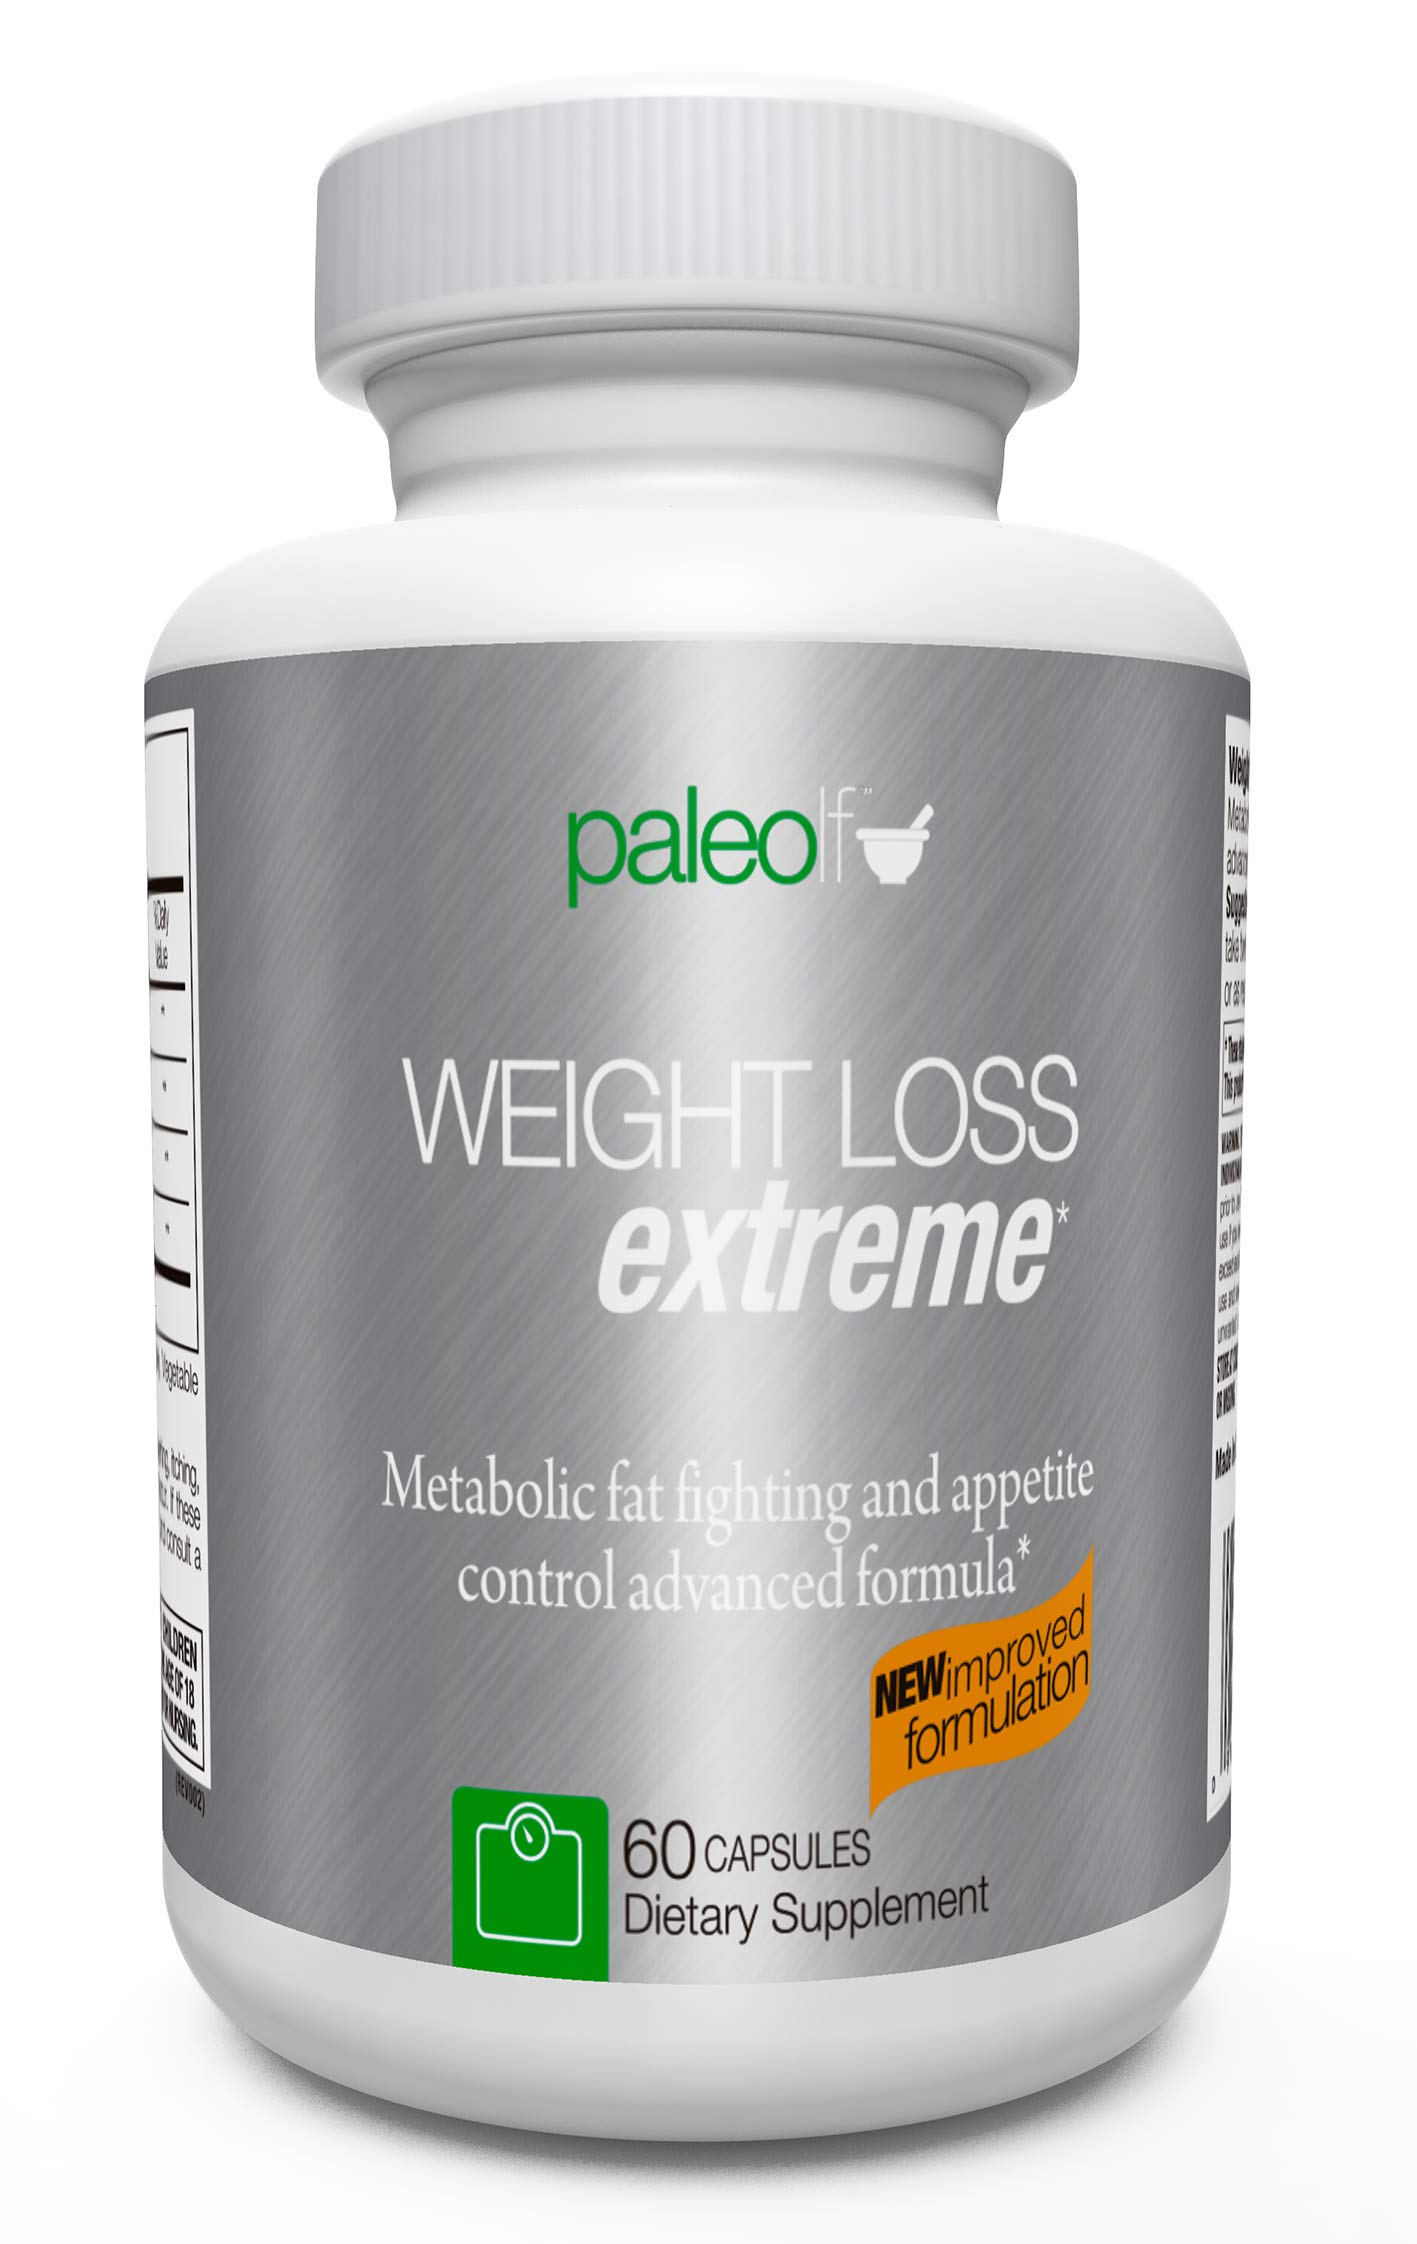 Paleo Life Weight Loss Extreme Fat Burner, Appetite and Cravings Control Formula, Fights Food Anxiety. 60 Capsules by Paleolf